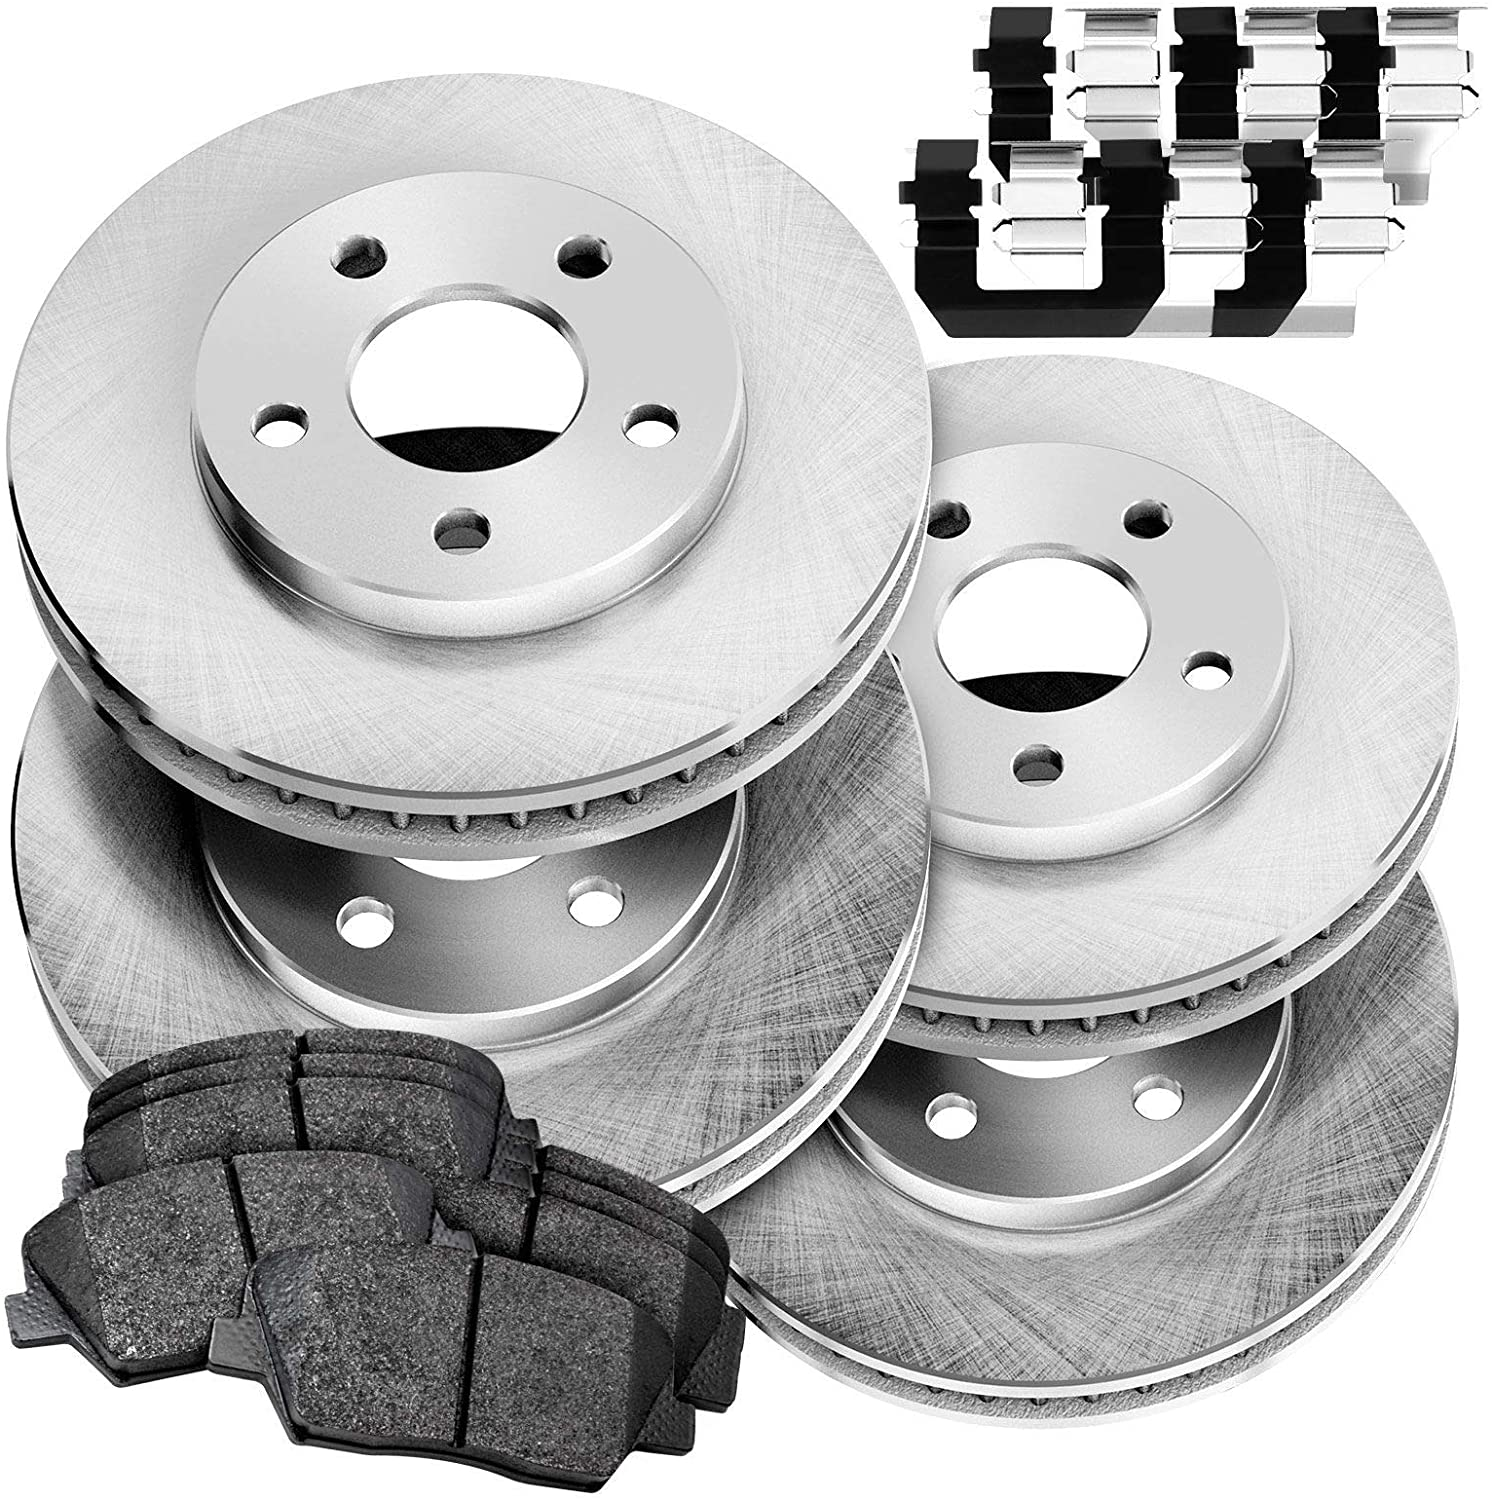 Full Kit Replacement Brake Rotors and Ceramic Brake Pads BLBC.44176.02